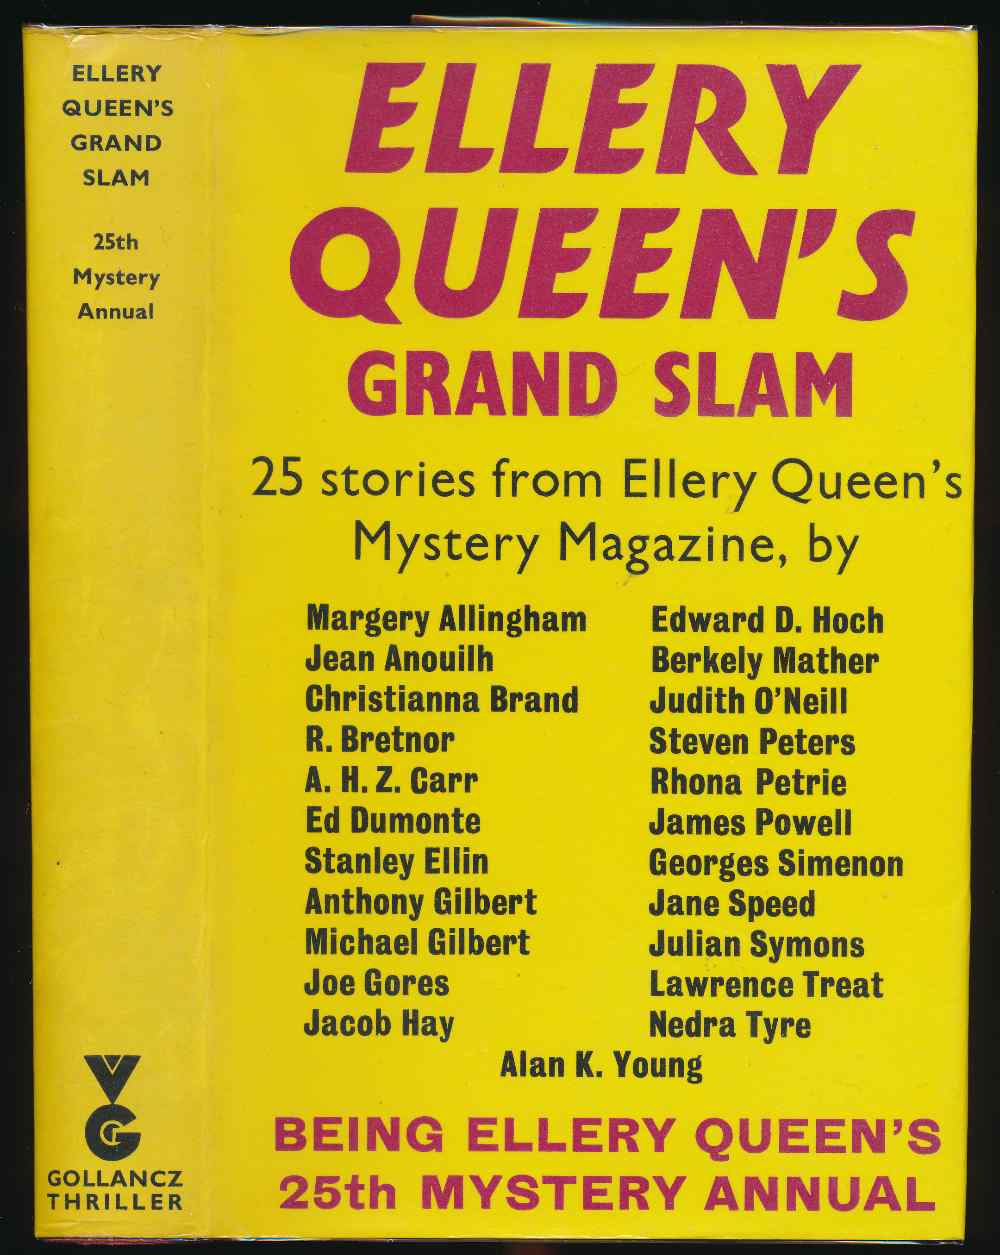 Ellery Queen's grand slam: 25 stories from Ellery Queen's Mystery Magazine